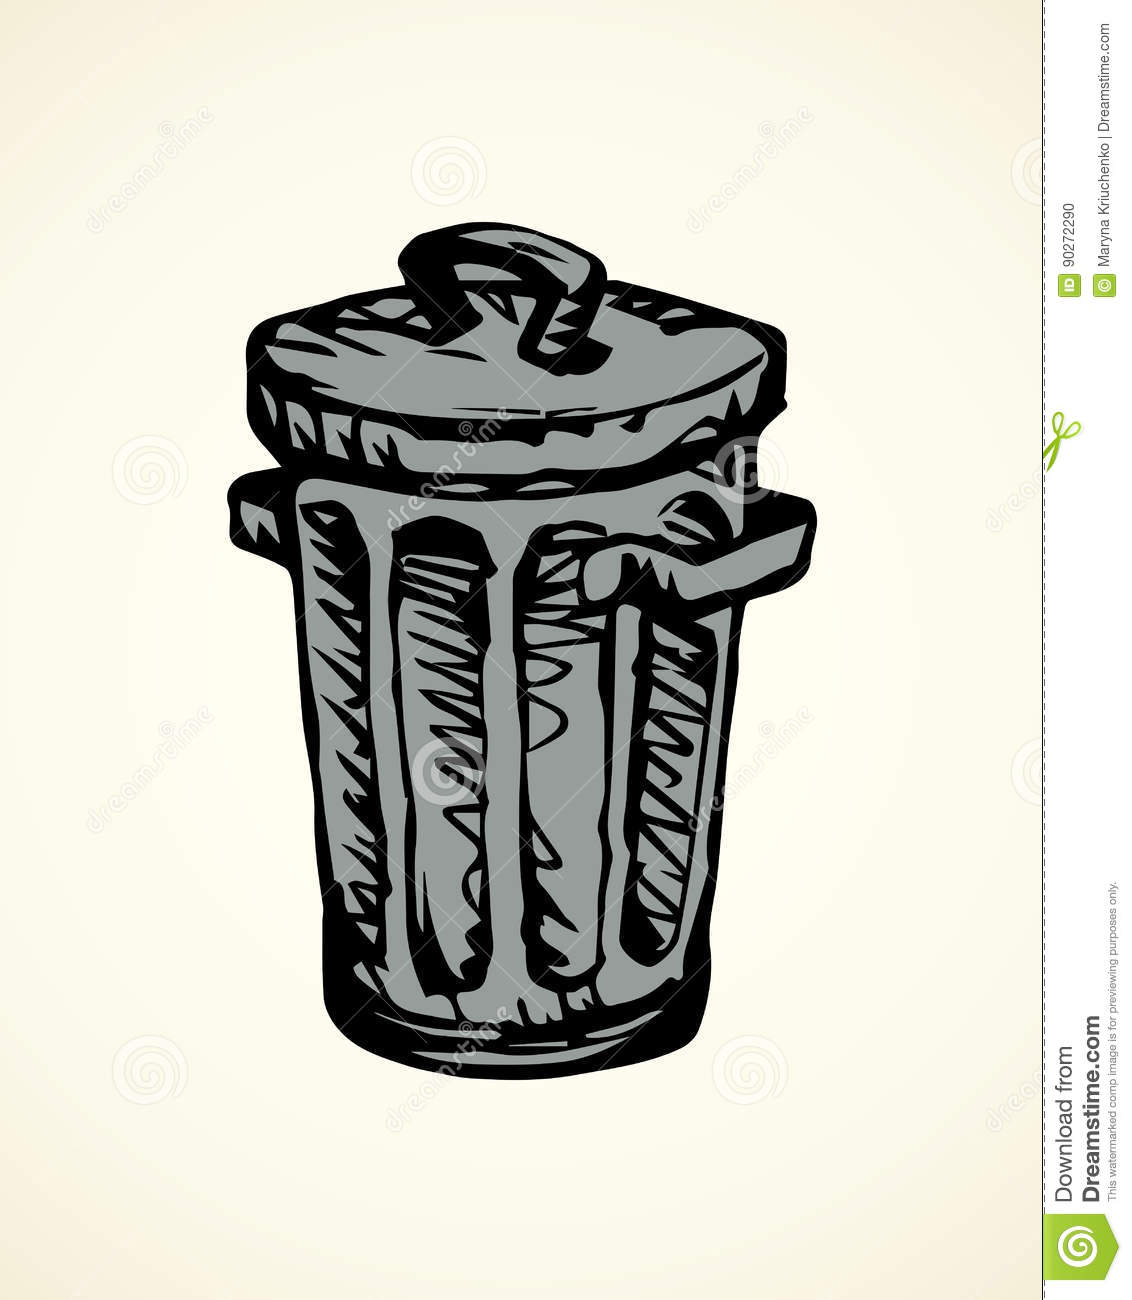 Cartoon trash dumpster cartoons illustrations vector stock images 277 pictures to download - Cool wastebaskets ...